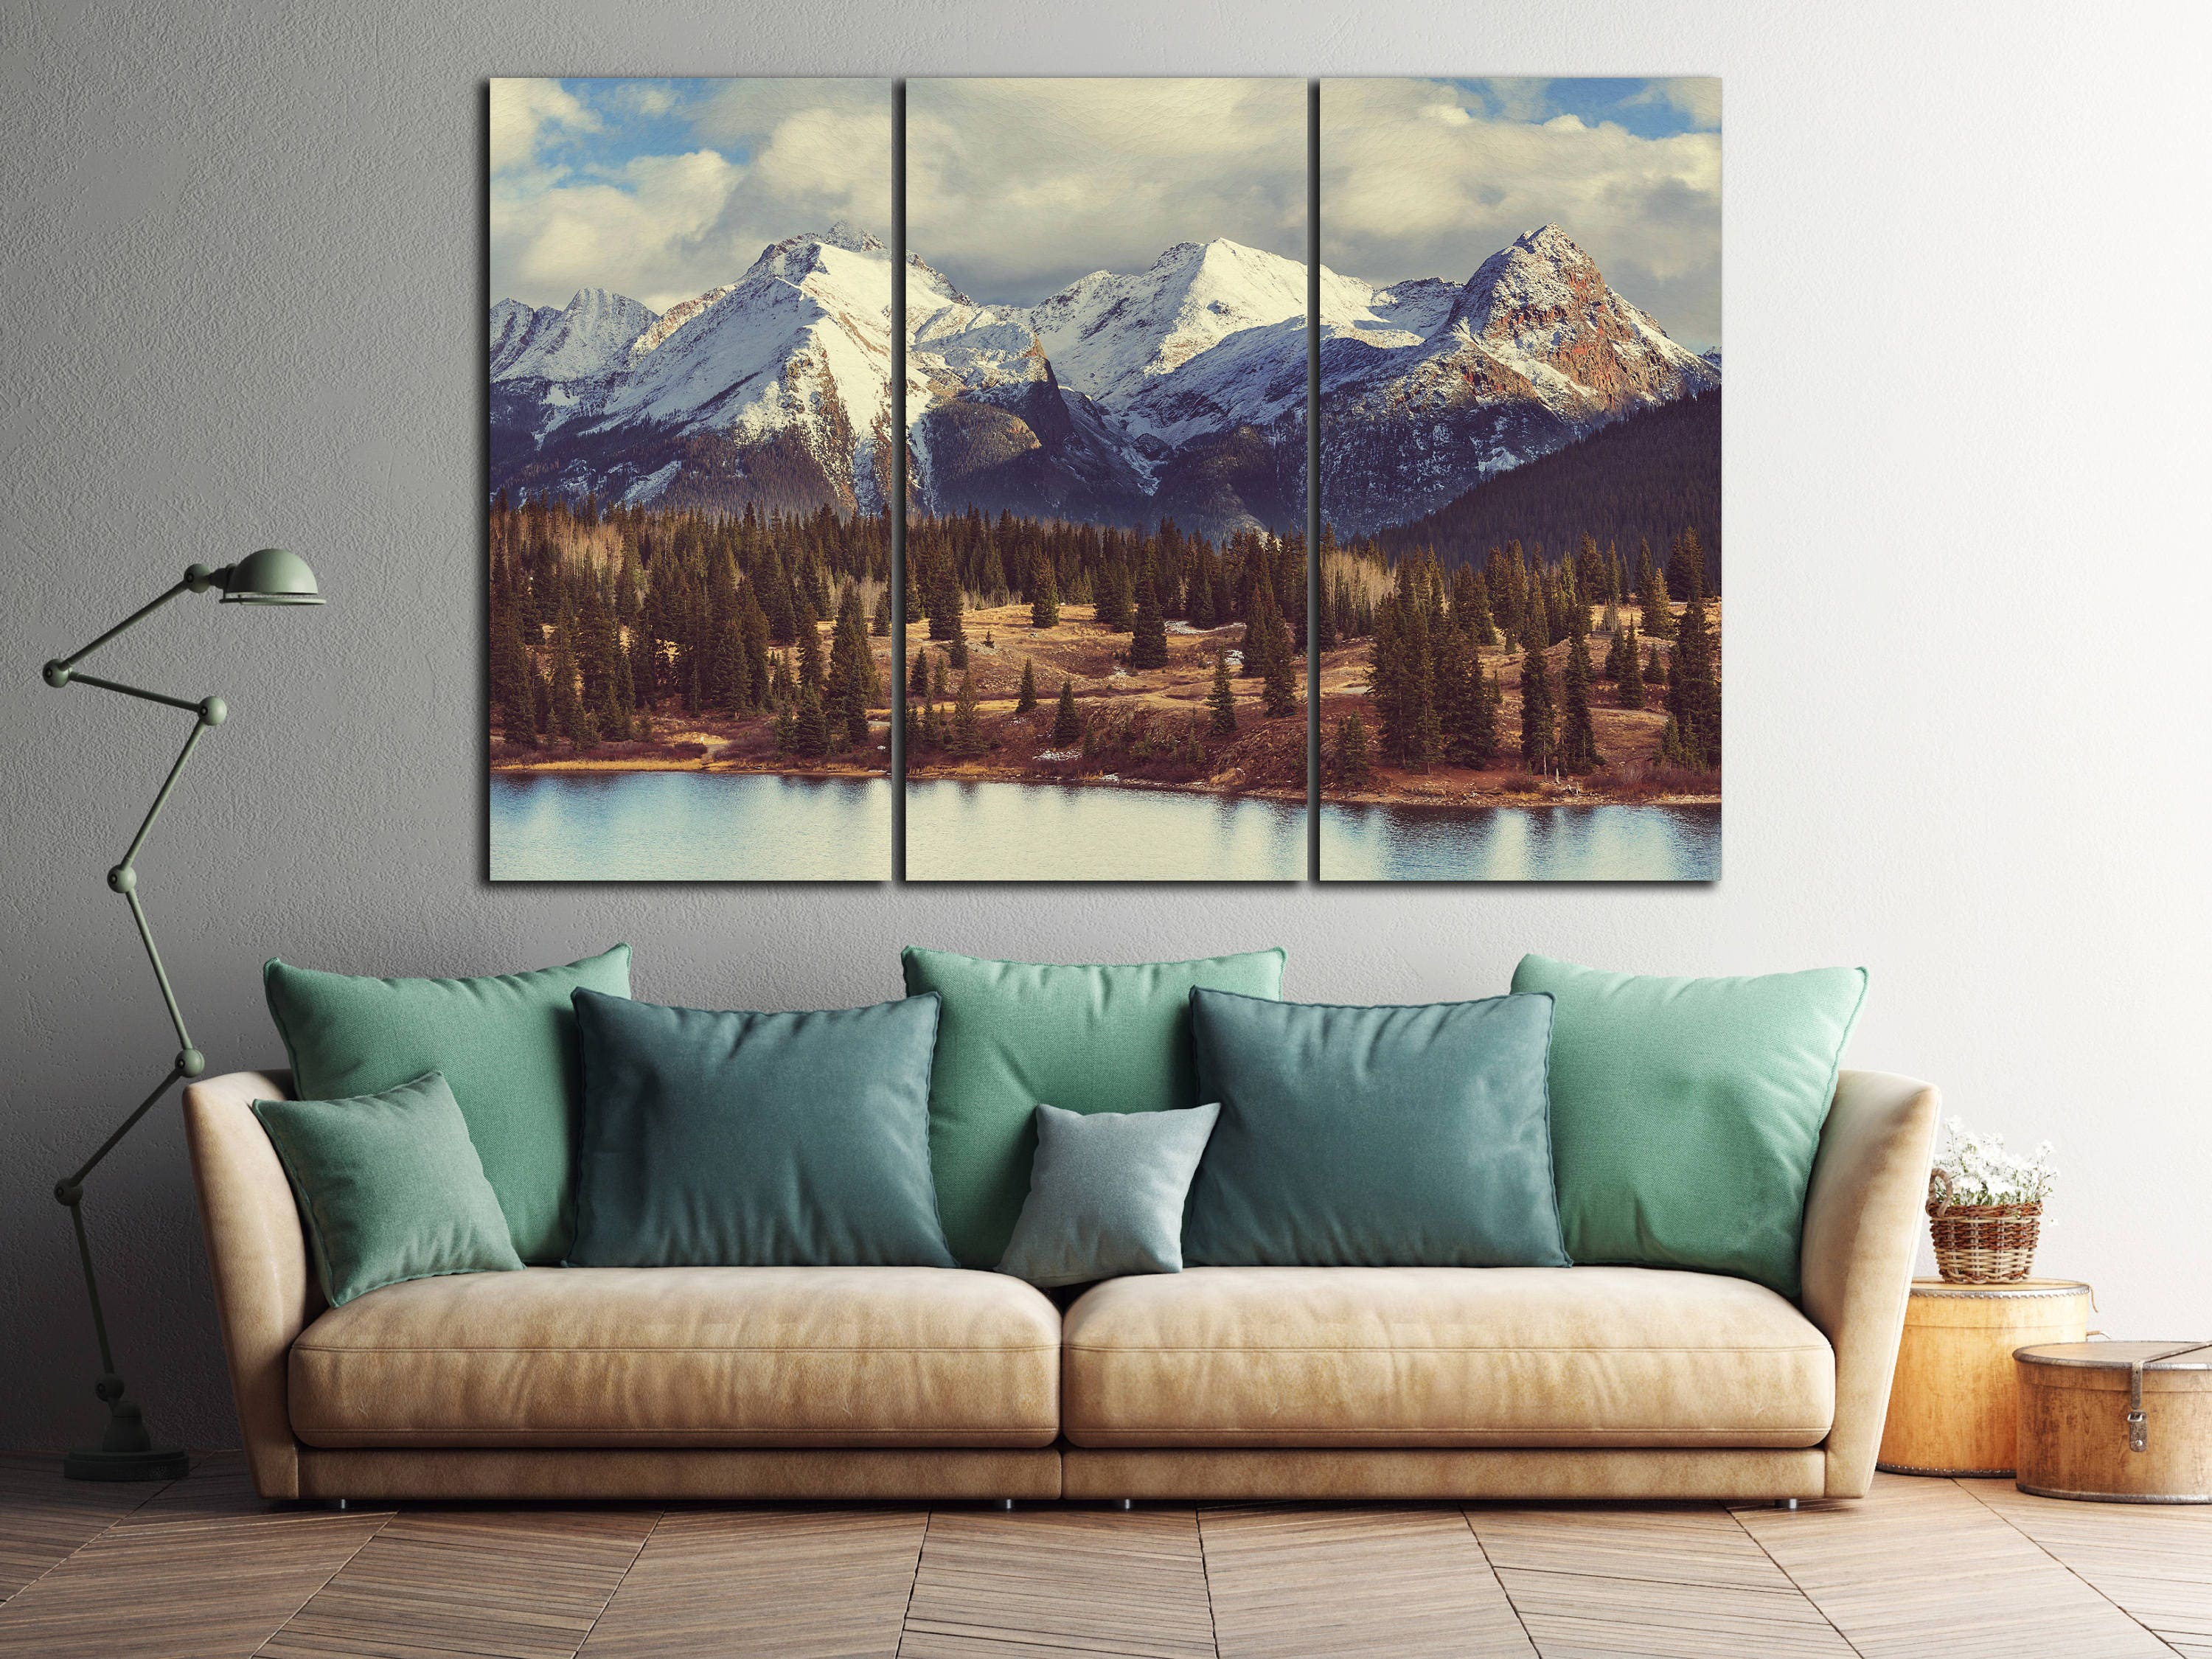 3 Panel Colorado Mountains Leather Print Large Wall Art Decor Nature Pieces Made In Italy Better Than Canvas